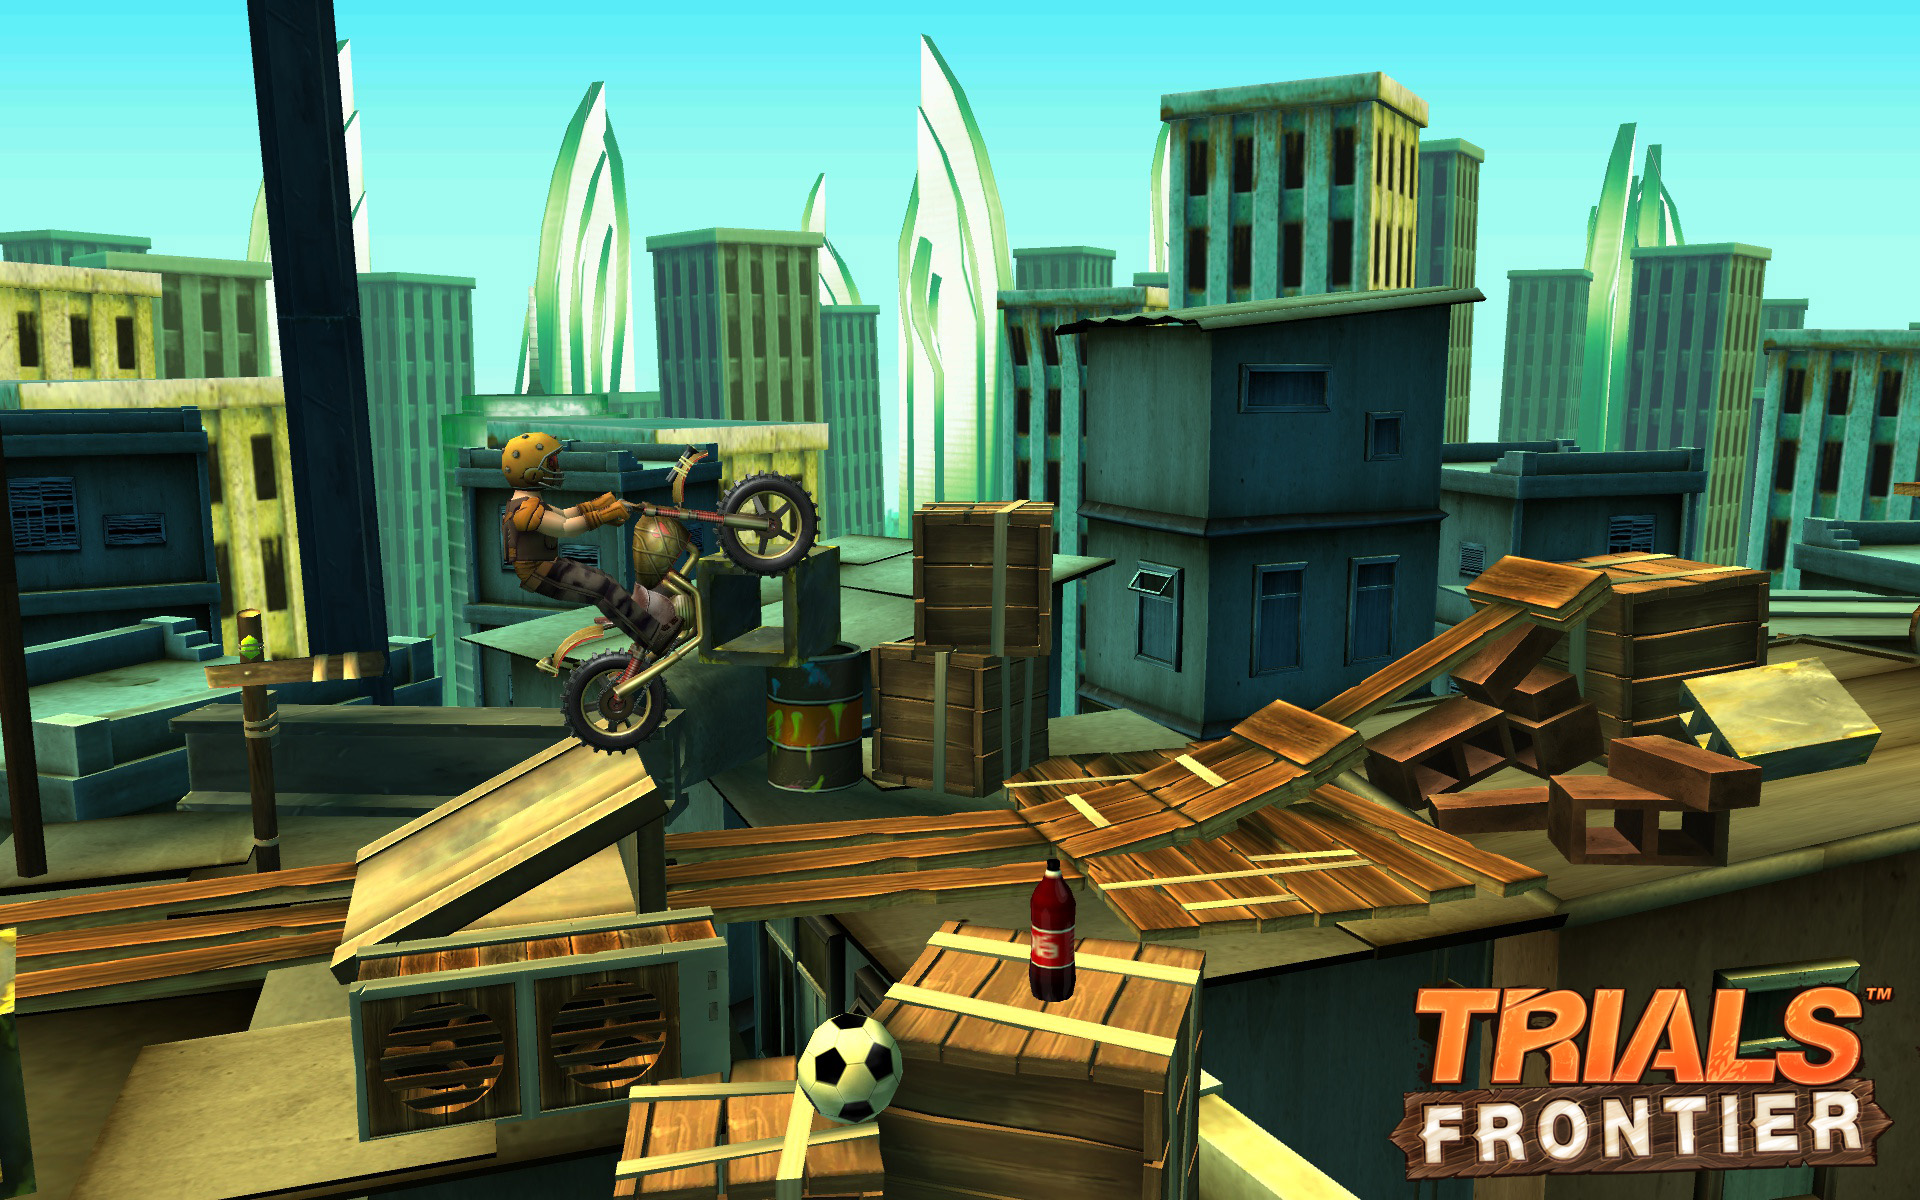 1370799091_trials_frontier_screenshots2_e3_130610_4.15pmpt